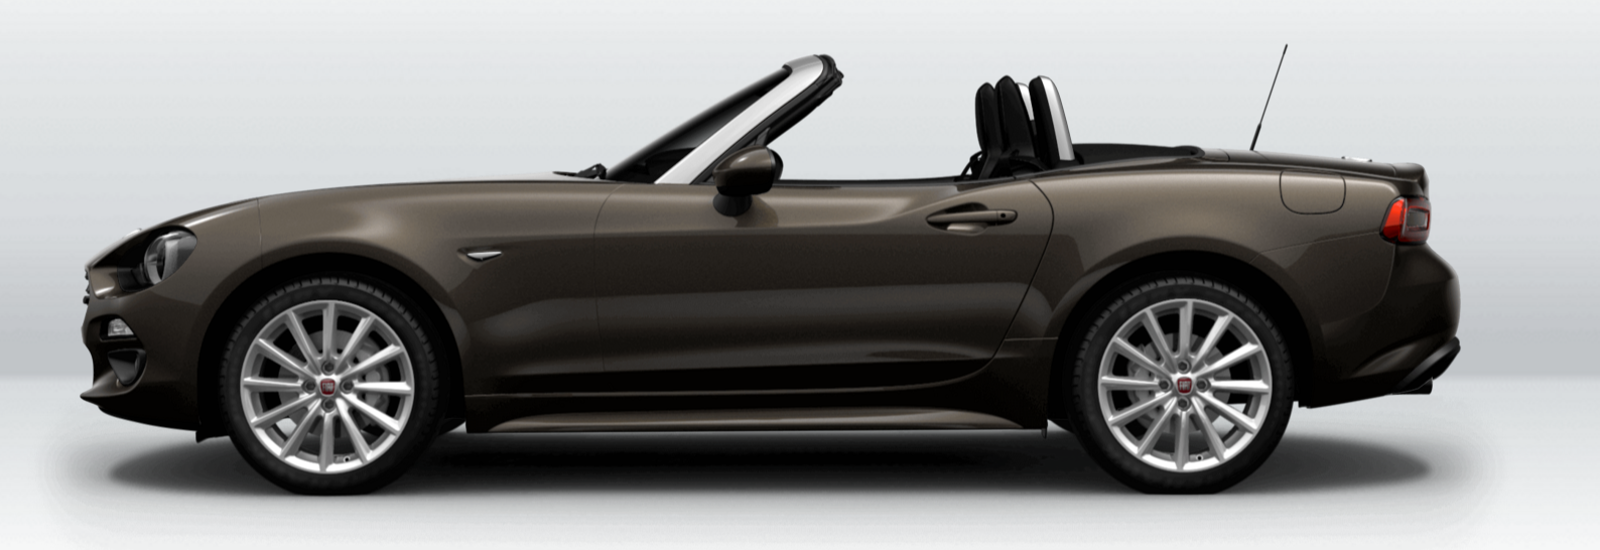 fiat 124 spider colours guide and prices carwow. Black Bedroom Furniture Sets. Home Design Ideas